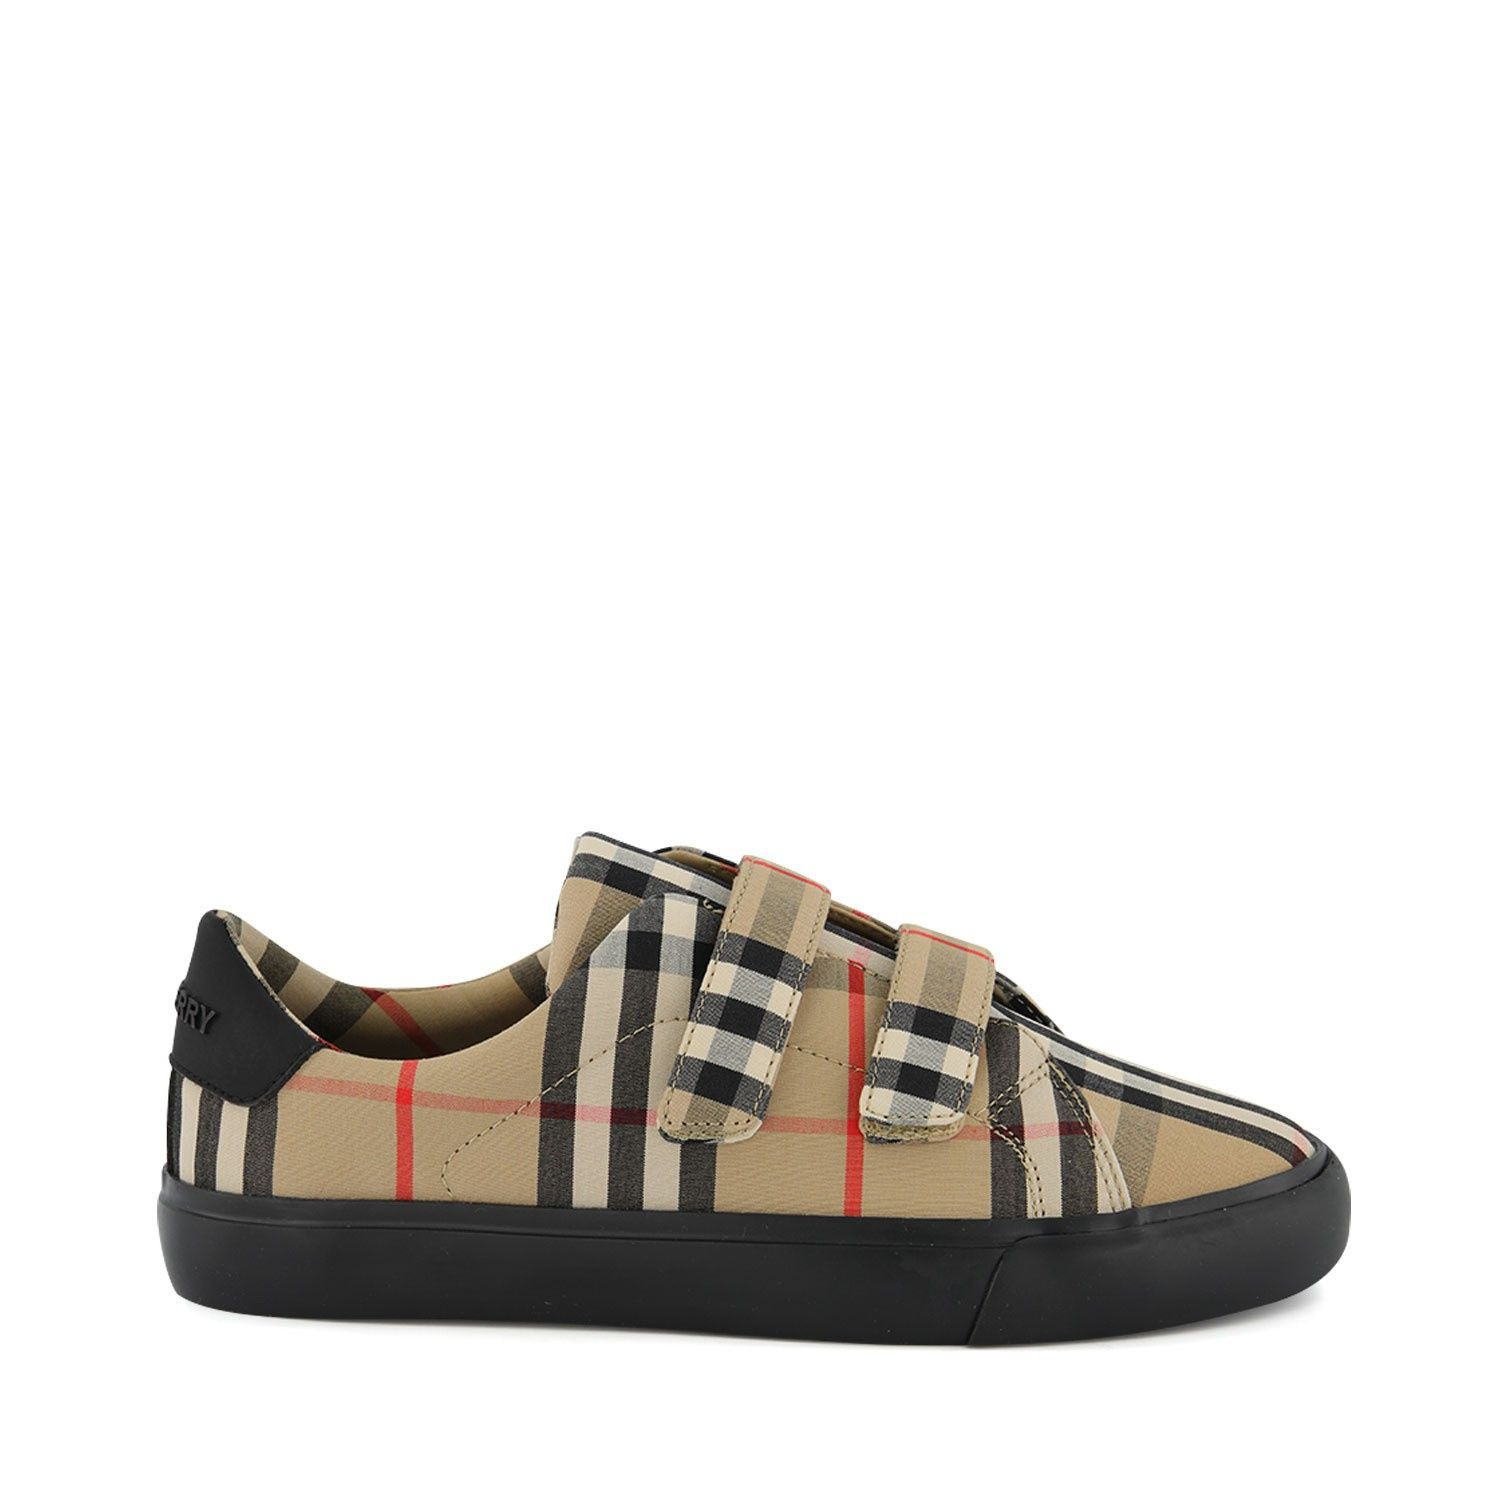 Picture of Burberry 8018818 kids sneakers black